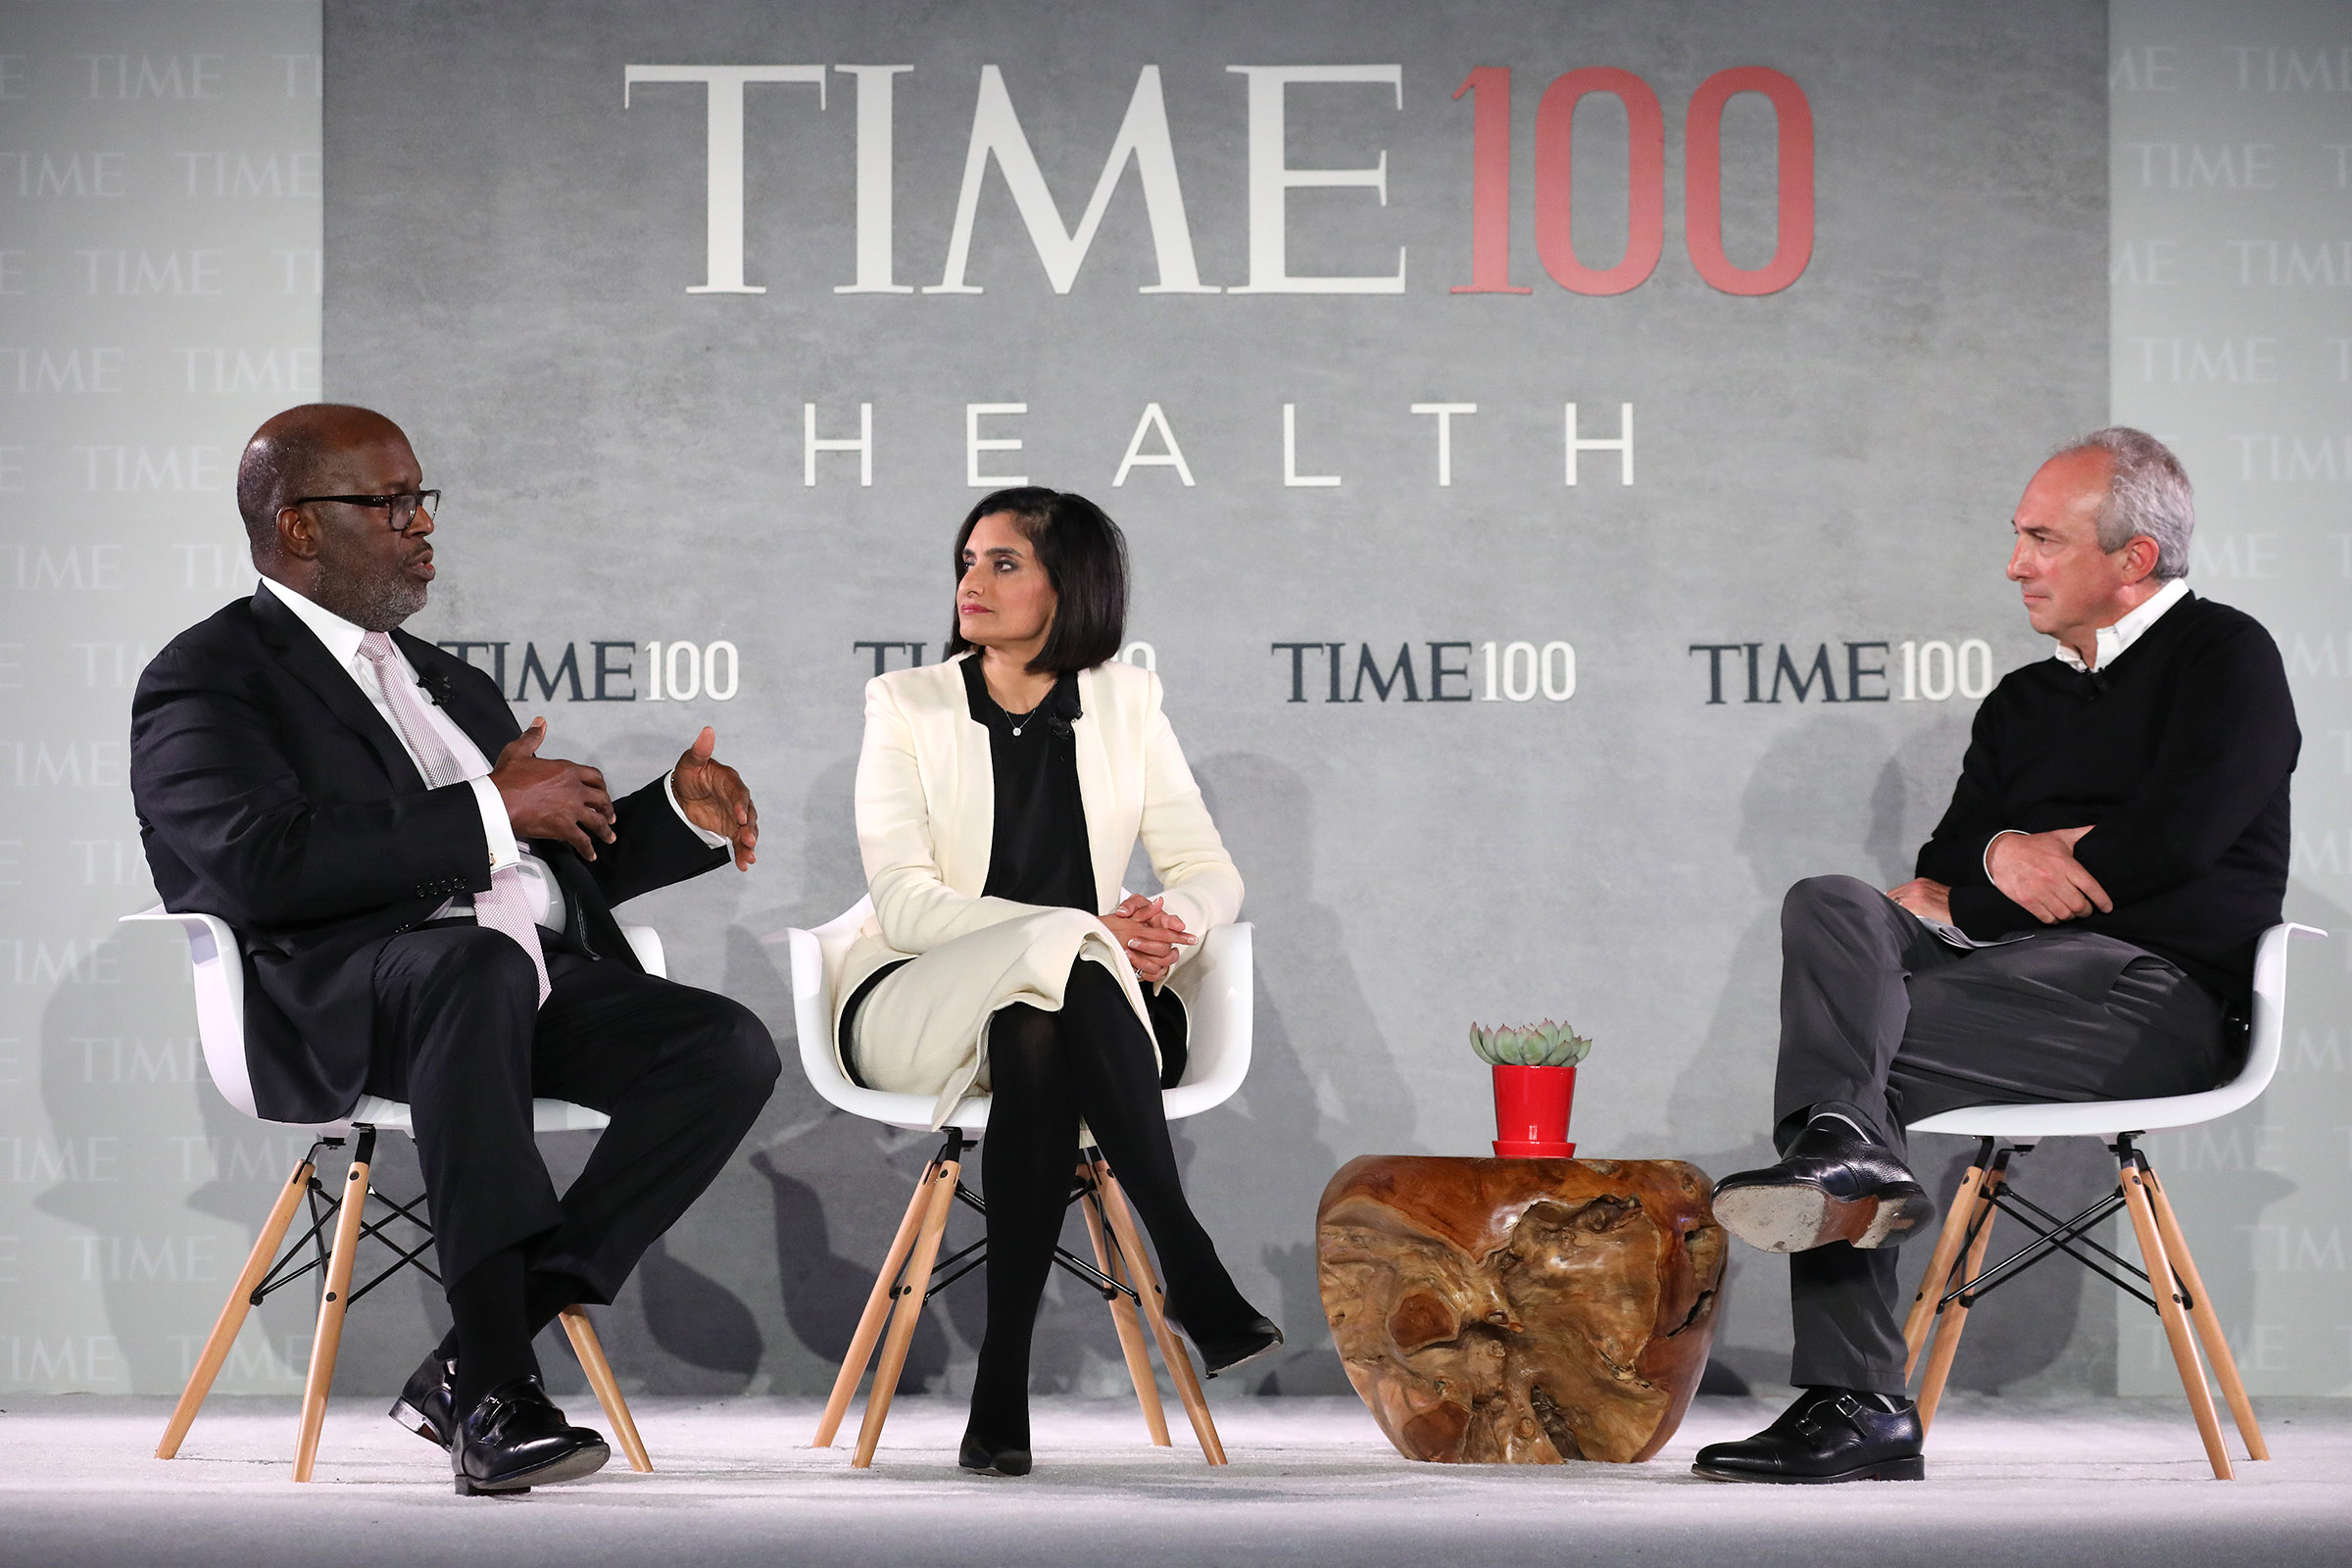 Chairman & CEO at Kaiser Permanente, Bernard J. Tyson, Administrator at Centers for Medicare & Medicaid, Seema Verma, and TIME 100 Health Summit Co-Chair, Dr. David Agus, speak onstage during the TIME 100 Health Summit at Pier 17 on October 17, 2019 in New York City.